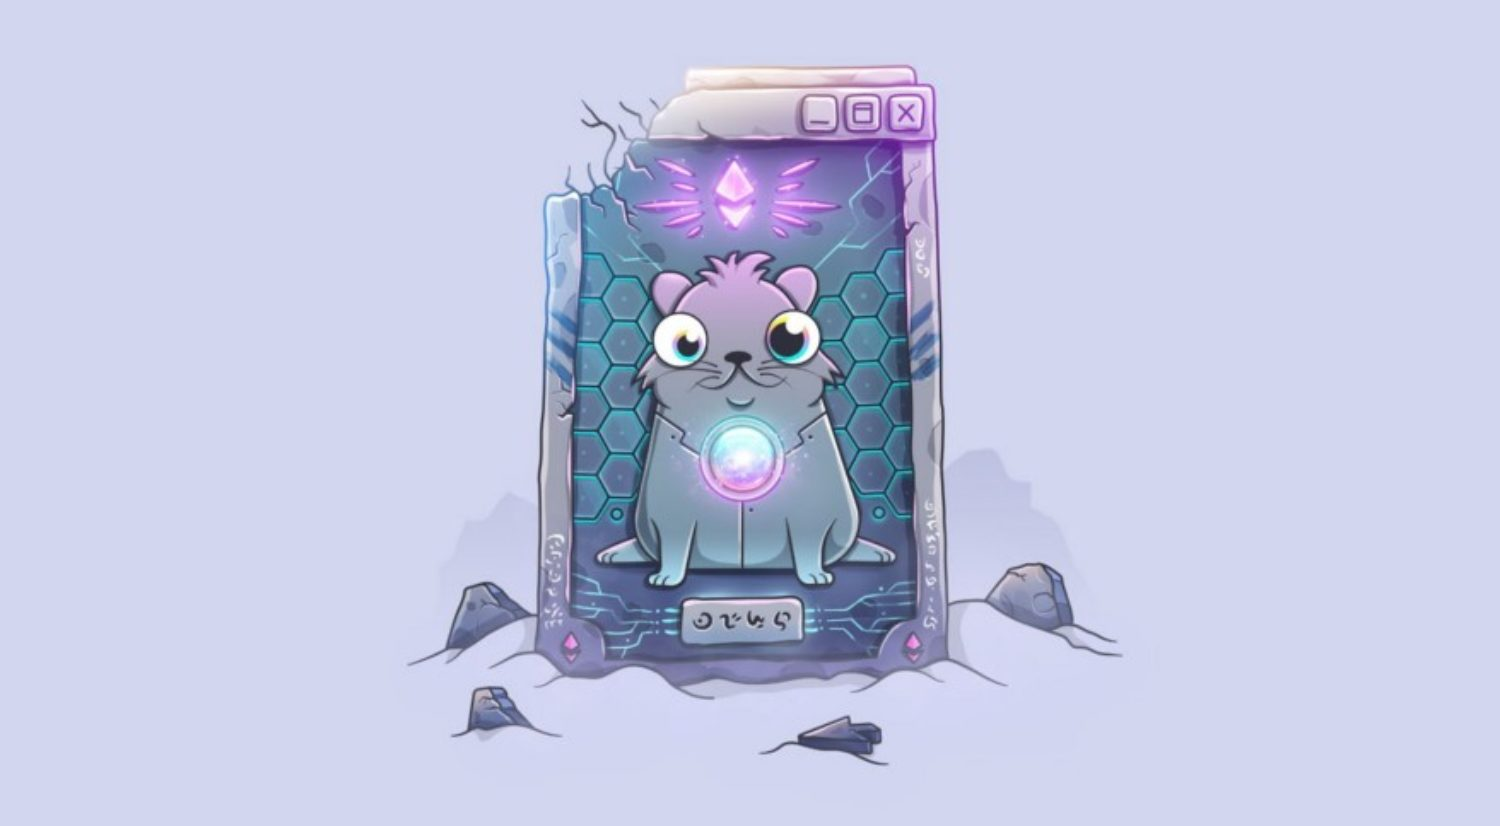 Cryptokitty: Celestial Cyber Dimension